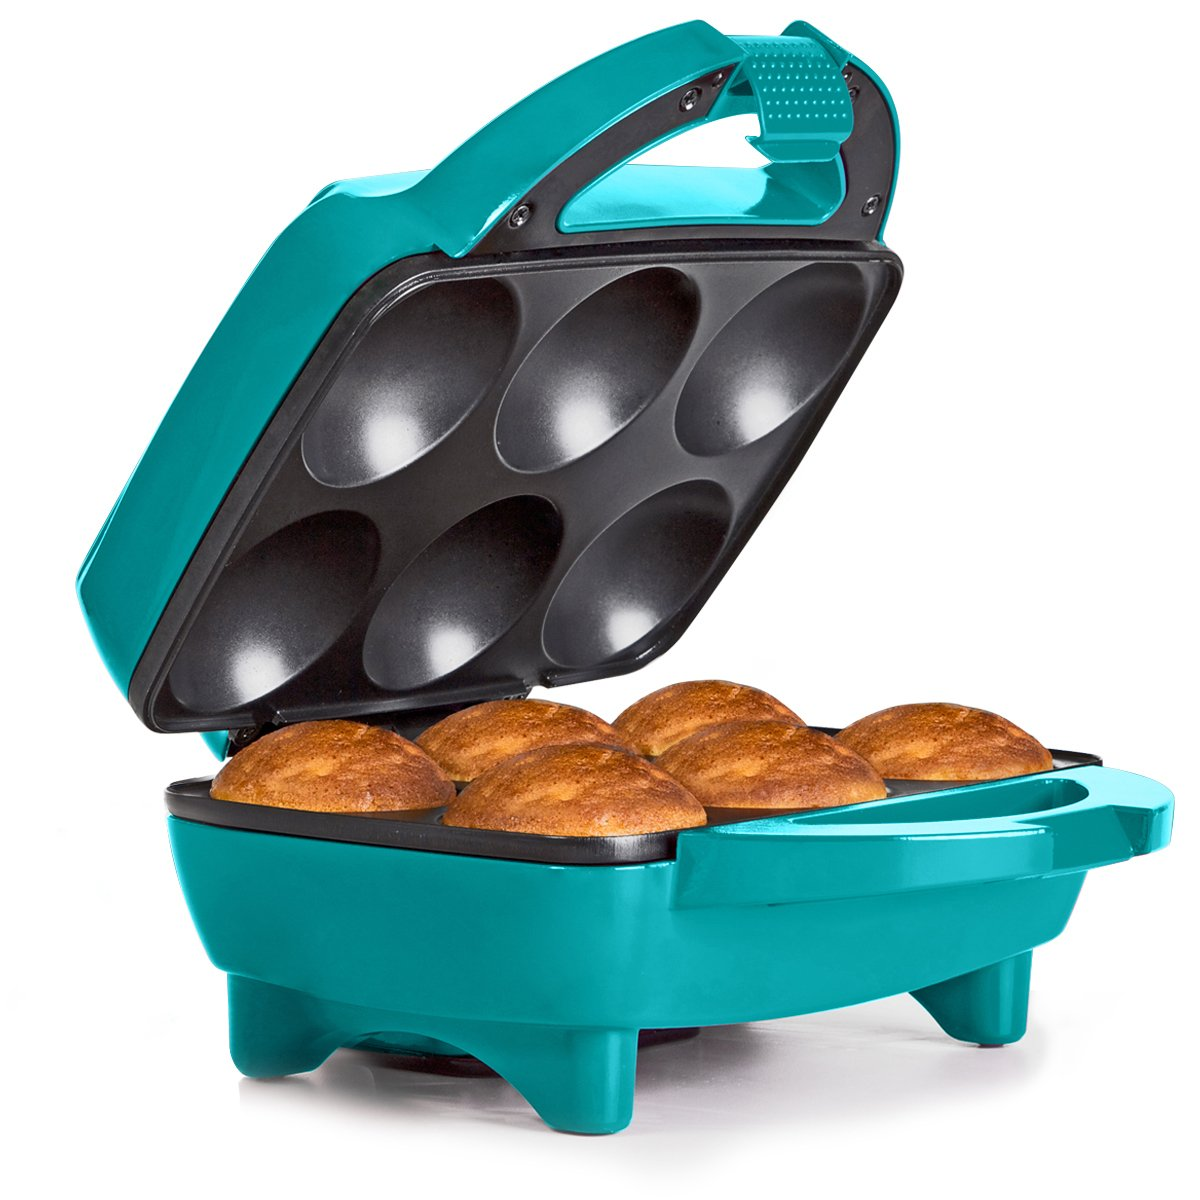 Holstein Housewares HF-09013E Fun Cupcake Maker – Teal